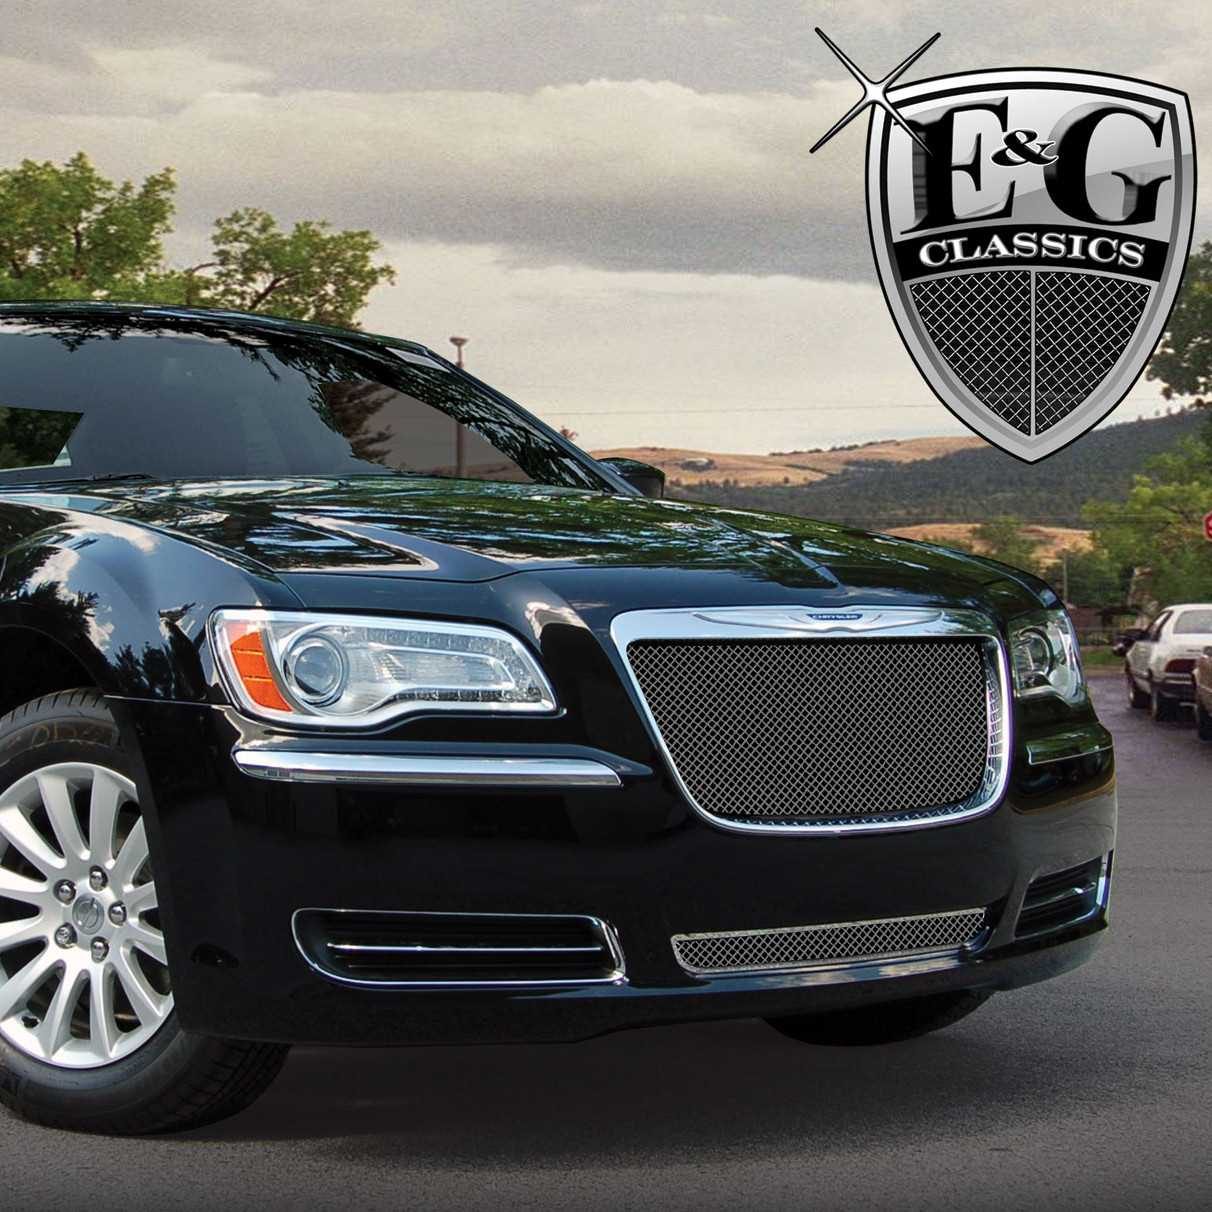 Chrysler E And G Black Ice Fine Mesh Grille B Pic